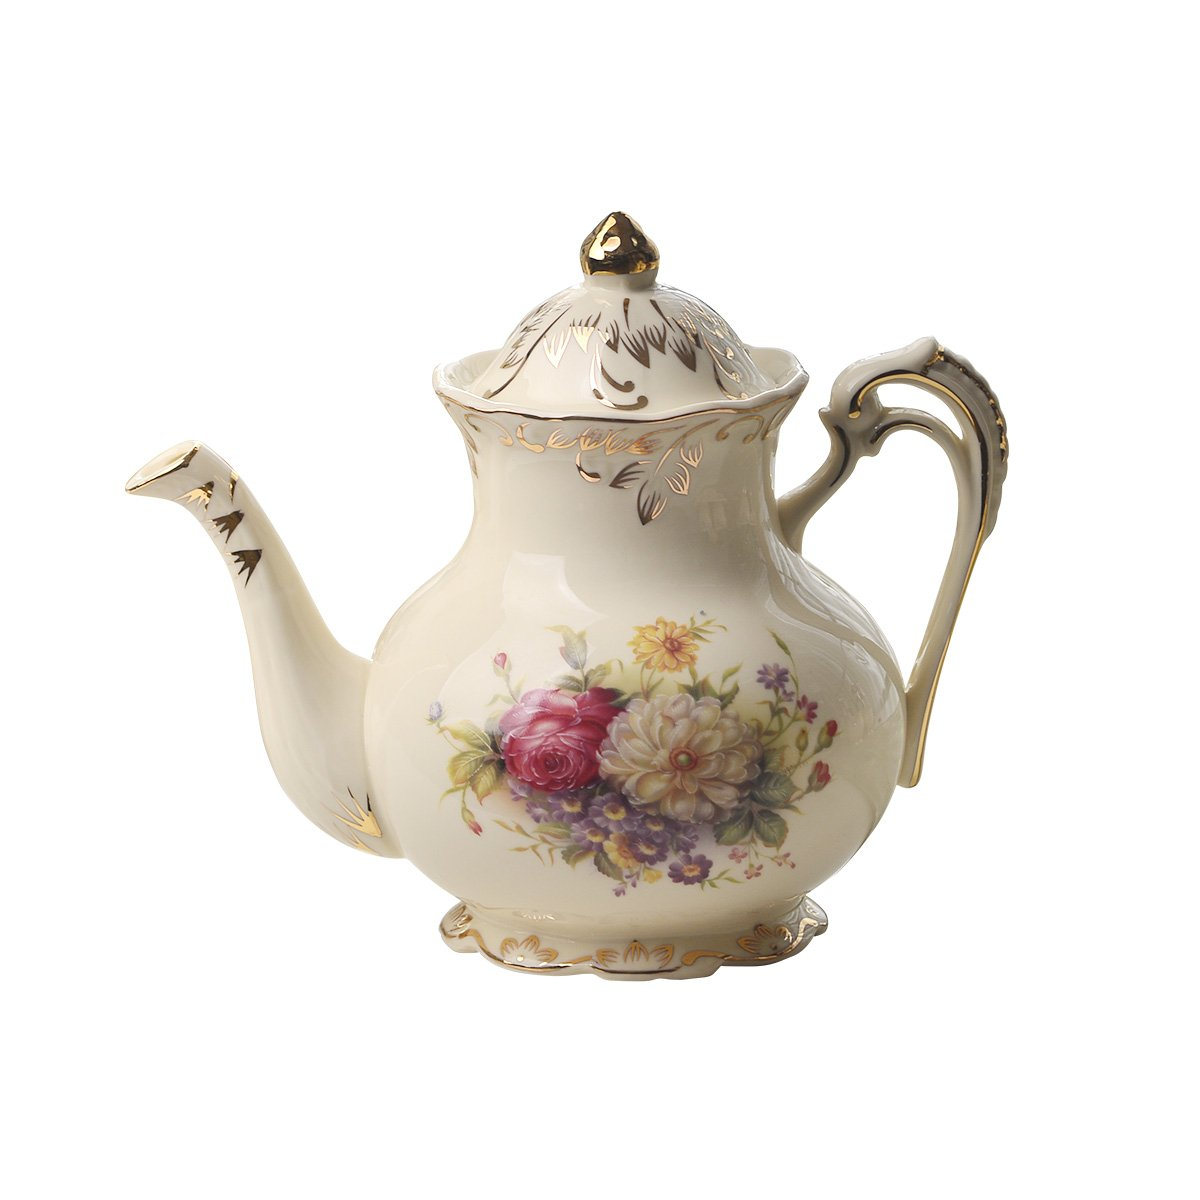 Flowering Shrubs Image Ivory Ceramic Tea Pot,Floral Vintage Teapot,29oz